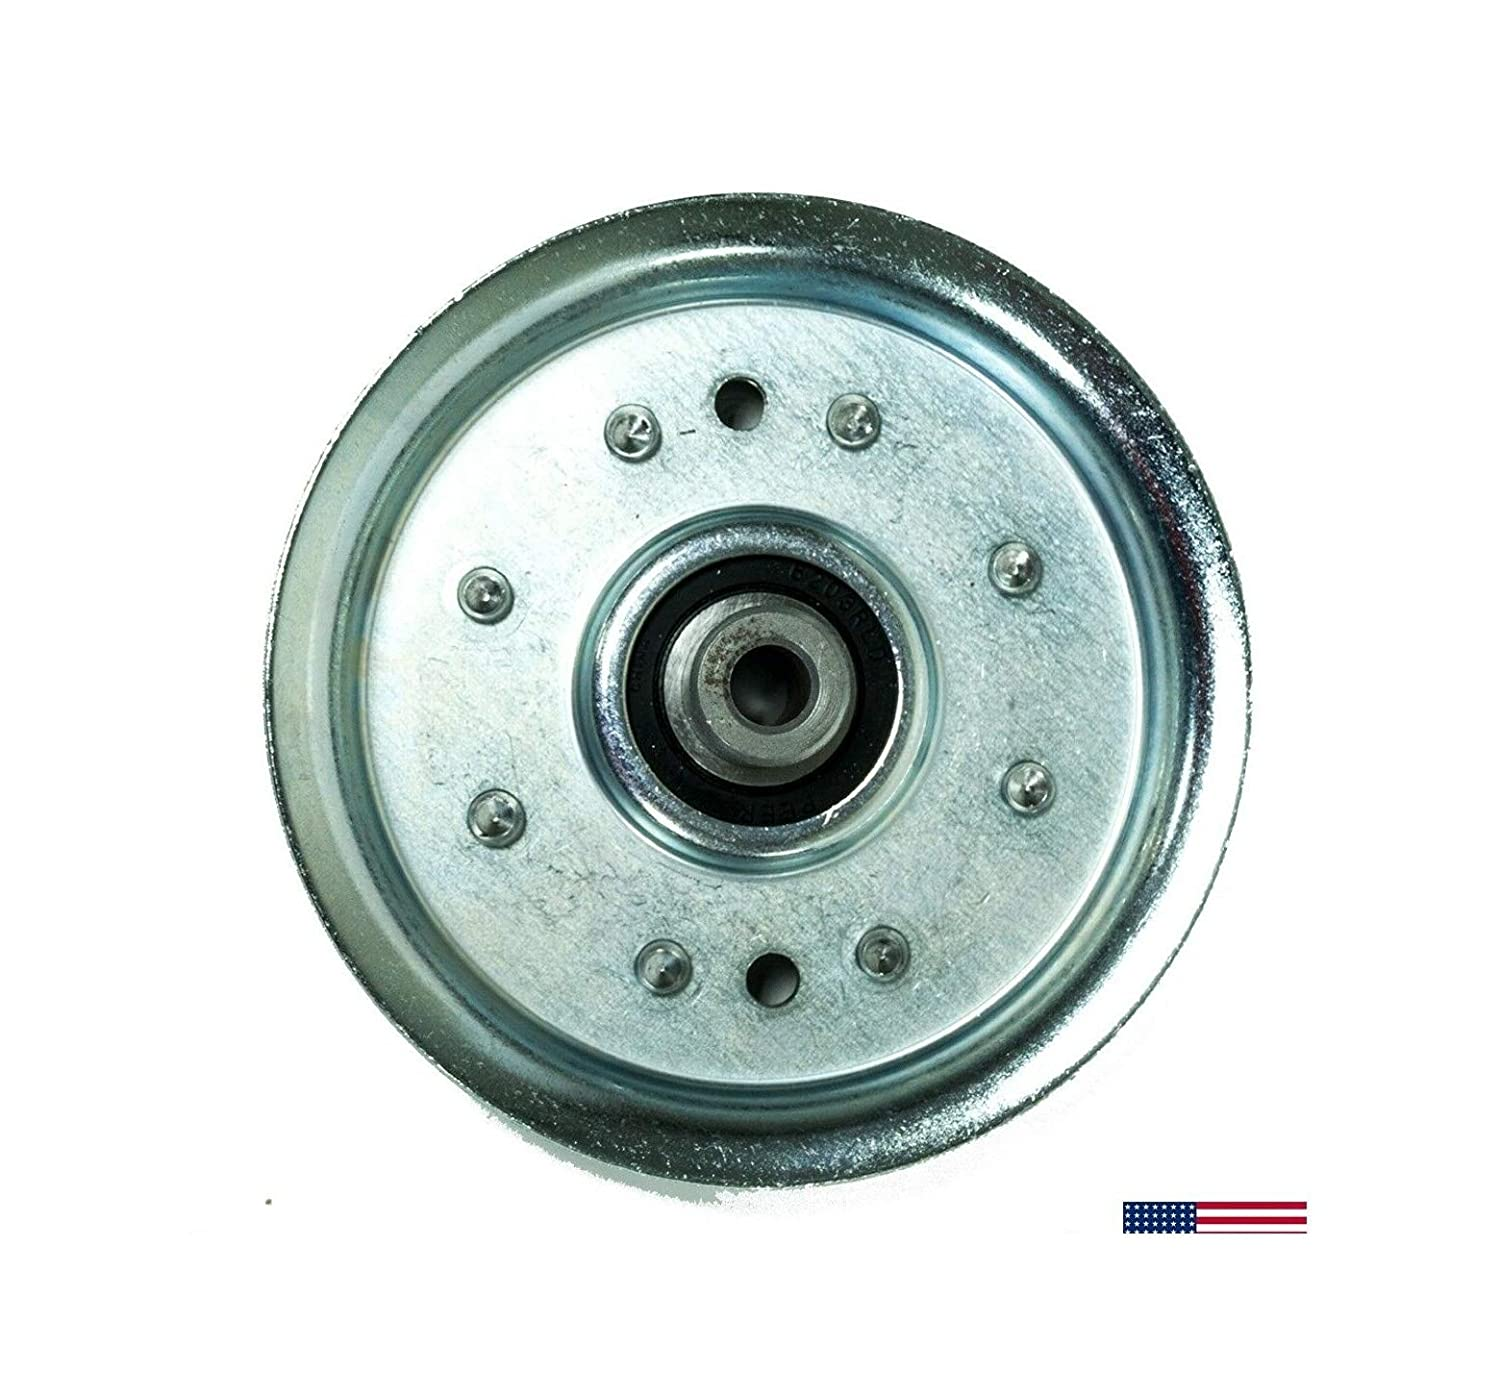 Idlery Pulley for 956-04129 756-04129B 756-04129C 753-08171 2-Packs